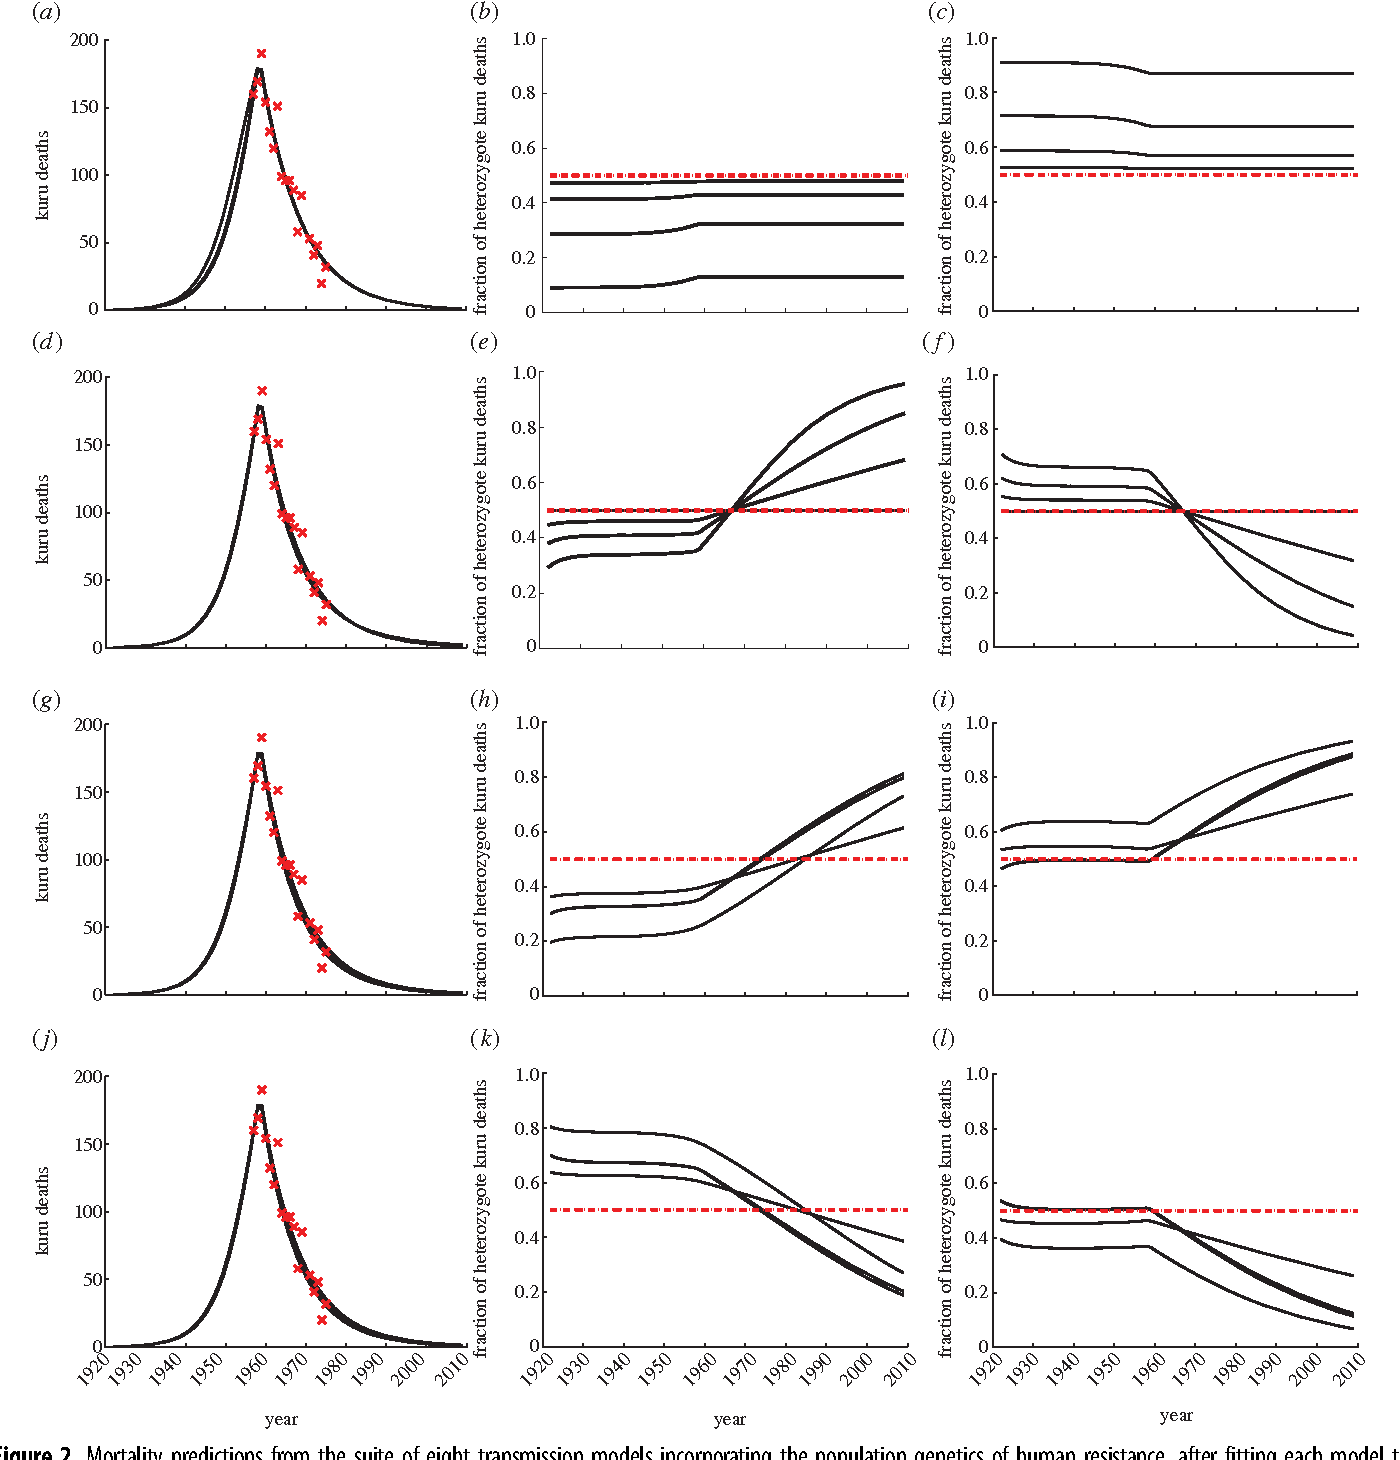 Figure 2. Mortality predictions from the suite of eight transmission models incorporating the population genetics of human resistance, after fitting each model to the kuru incidence data indicated by crosses [29,30]. Changing the transmission and/or incubation rates of the heterozygotes relative to the homozygotes can have a substantial impact on the predicted mortality rate of heterozygotes, but little impact on the overall predicted kuru incidence. (a) Model T: black lines show the predicted kuru mortality from varying bMV and bMM such that the predicted incidence is very similar to the best-fit model. (b) Model Ti: the fraction of kuru mortality attributable to heterozygotes with the same values of bMV and bMM used in (a) such that bMV, bMM. (c) Model Tii: the fraction of kuru mortality attributable to heterozygotes with the same values of bMV and bMM used in (a) such that bMV . bMM. (d ) Model I: predicted kuru mortality from varying yMV and yMM. (e) Model Ii: the same values of yMV and yMM used in (d ) such that yMV, yMM. ( f ) Model Iii: the same values of yMV and yMM used in (d ) such that yMV . yMM. (g,j ) Model B: predicted kuru mortality from varying bMV, bMM, yMV and yMM. (h) Model Bi: the same values of bMV, bMM, yMV and yMM used in (g) and ( j ) such that bMV, bMM and yMV, yMM. (i) Model Bii: the same values of bMV, bMM, yMV and yMM used in (g) and ( j ) such that bMV, bMM and yMV . yMM. (k) Model Biii: the same values of bMV, bMM, yMV and yMM used in (g) and ( j ) such that bMV . bMM and yMV, yMM. (l ) Model Biv: the same values of bMV, bMM, yMV and yMM used in (g) and ( j ) such that bMV . bMM and yMV . yMM. (Online version in colour.)